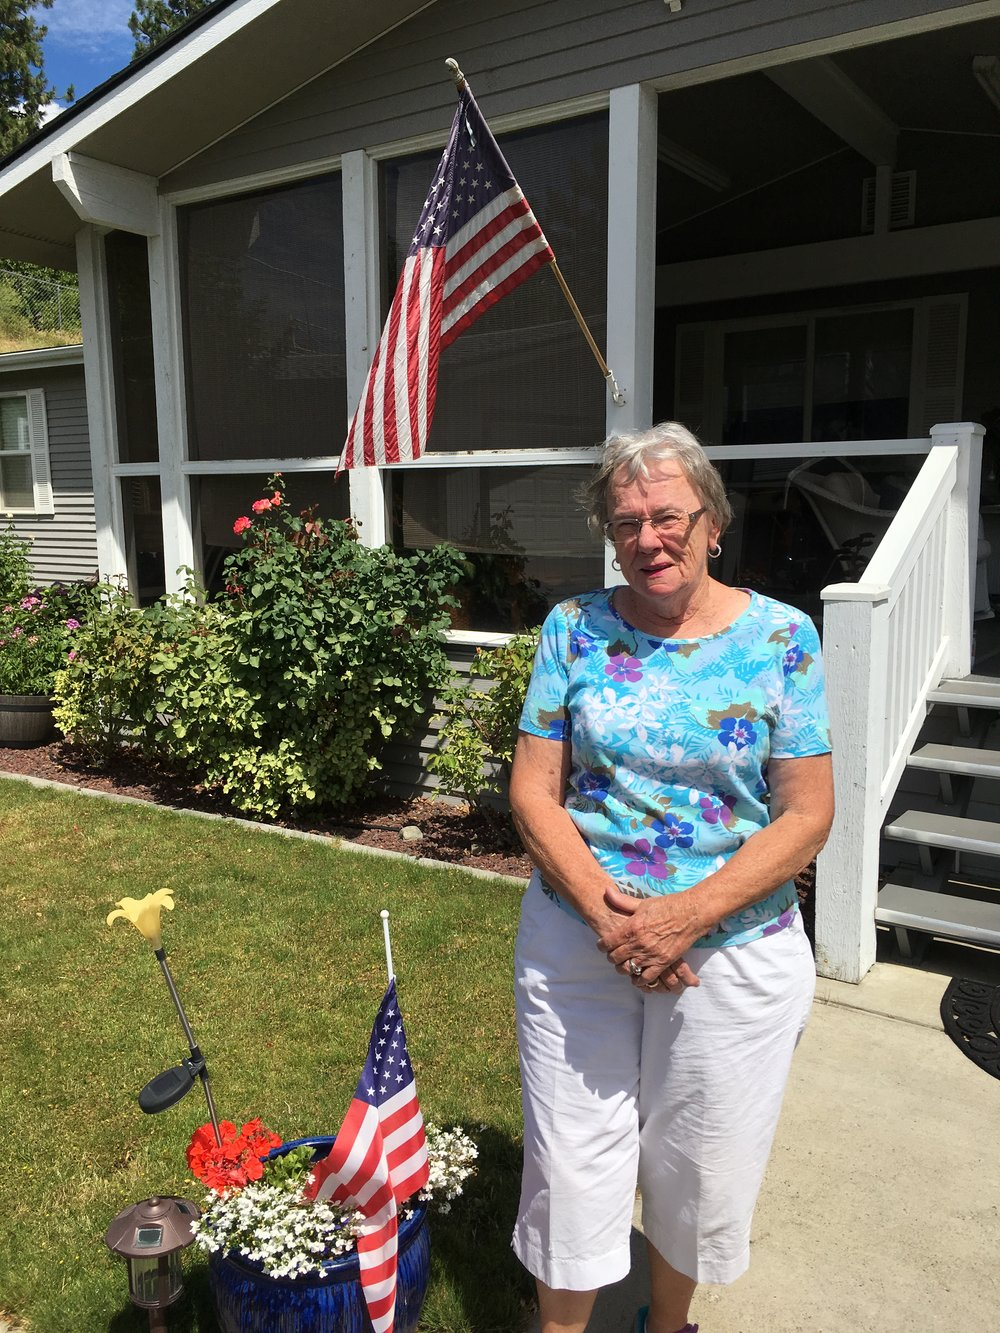 The DeLong's home at Chelan Falls is a beauty thanks to Sue's hard work.